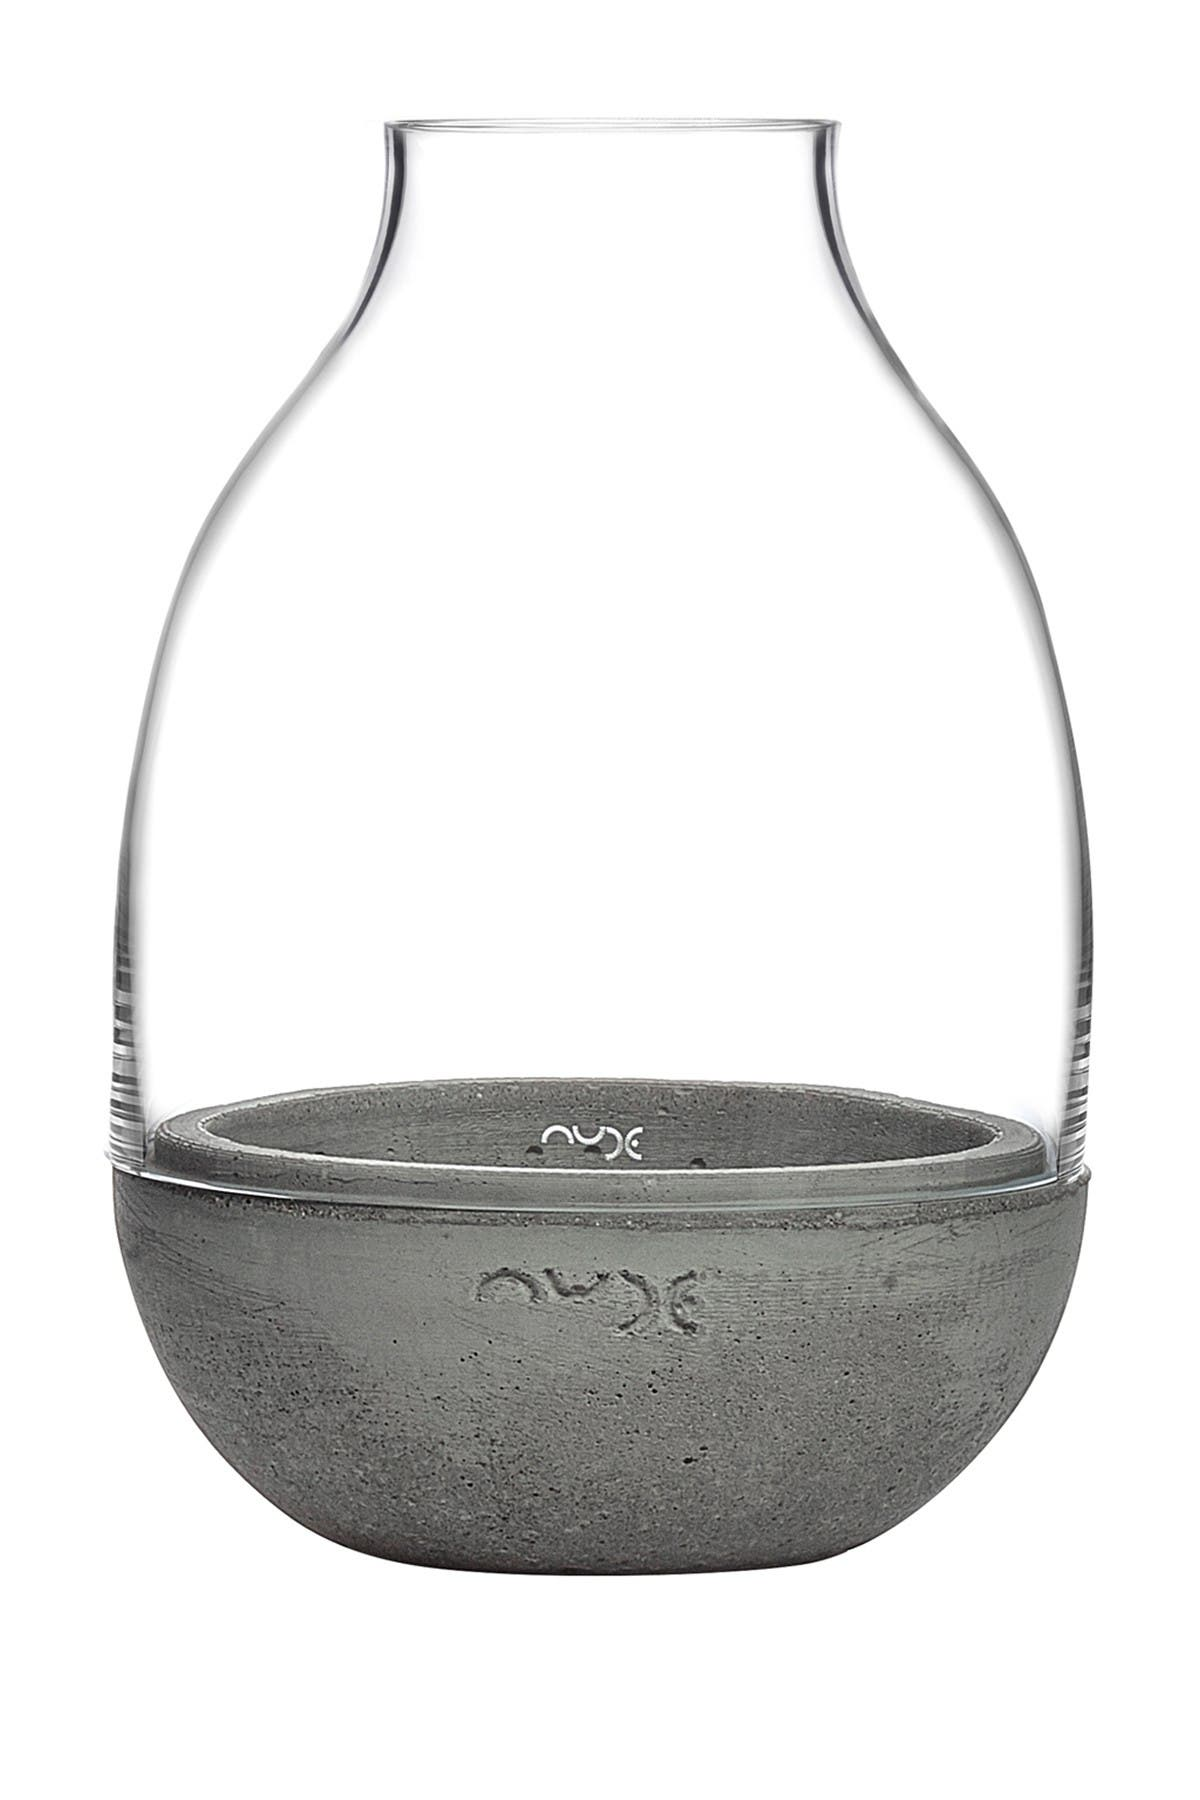 Image of Nude Glass Eden Mini Terrarium - Clear with Moulded Concrete Base